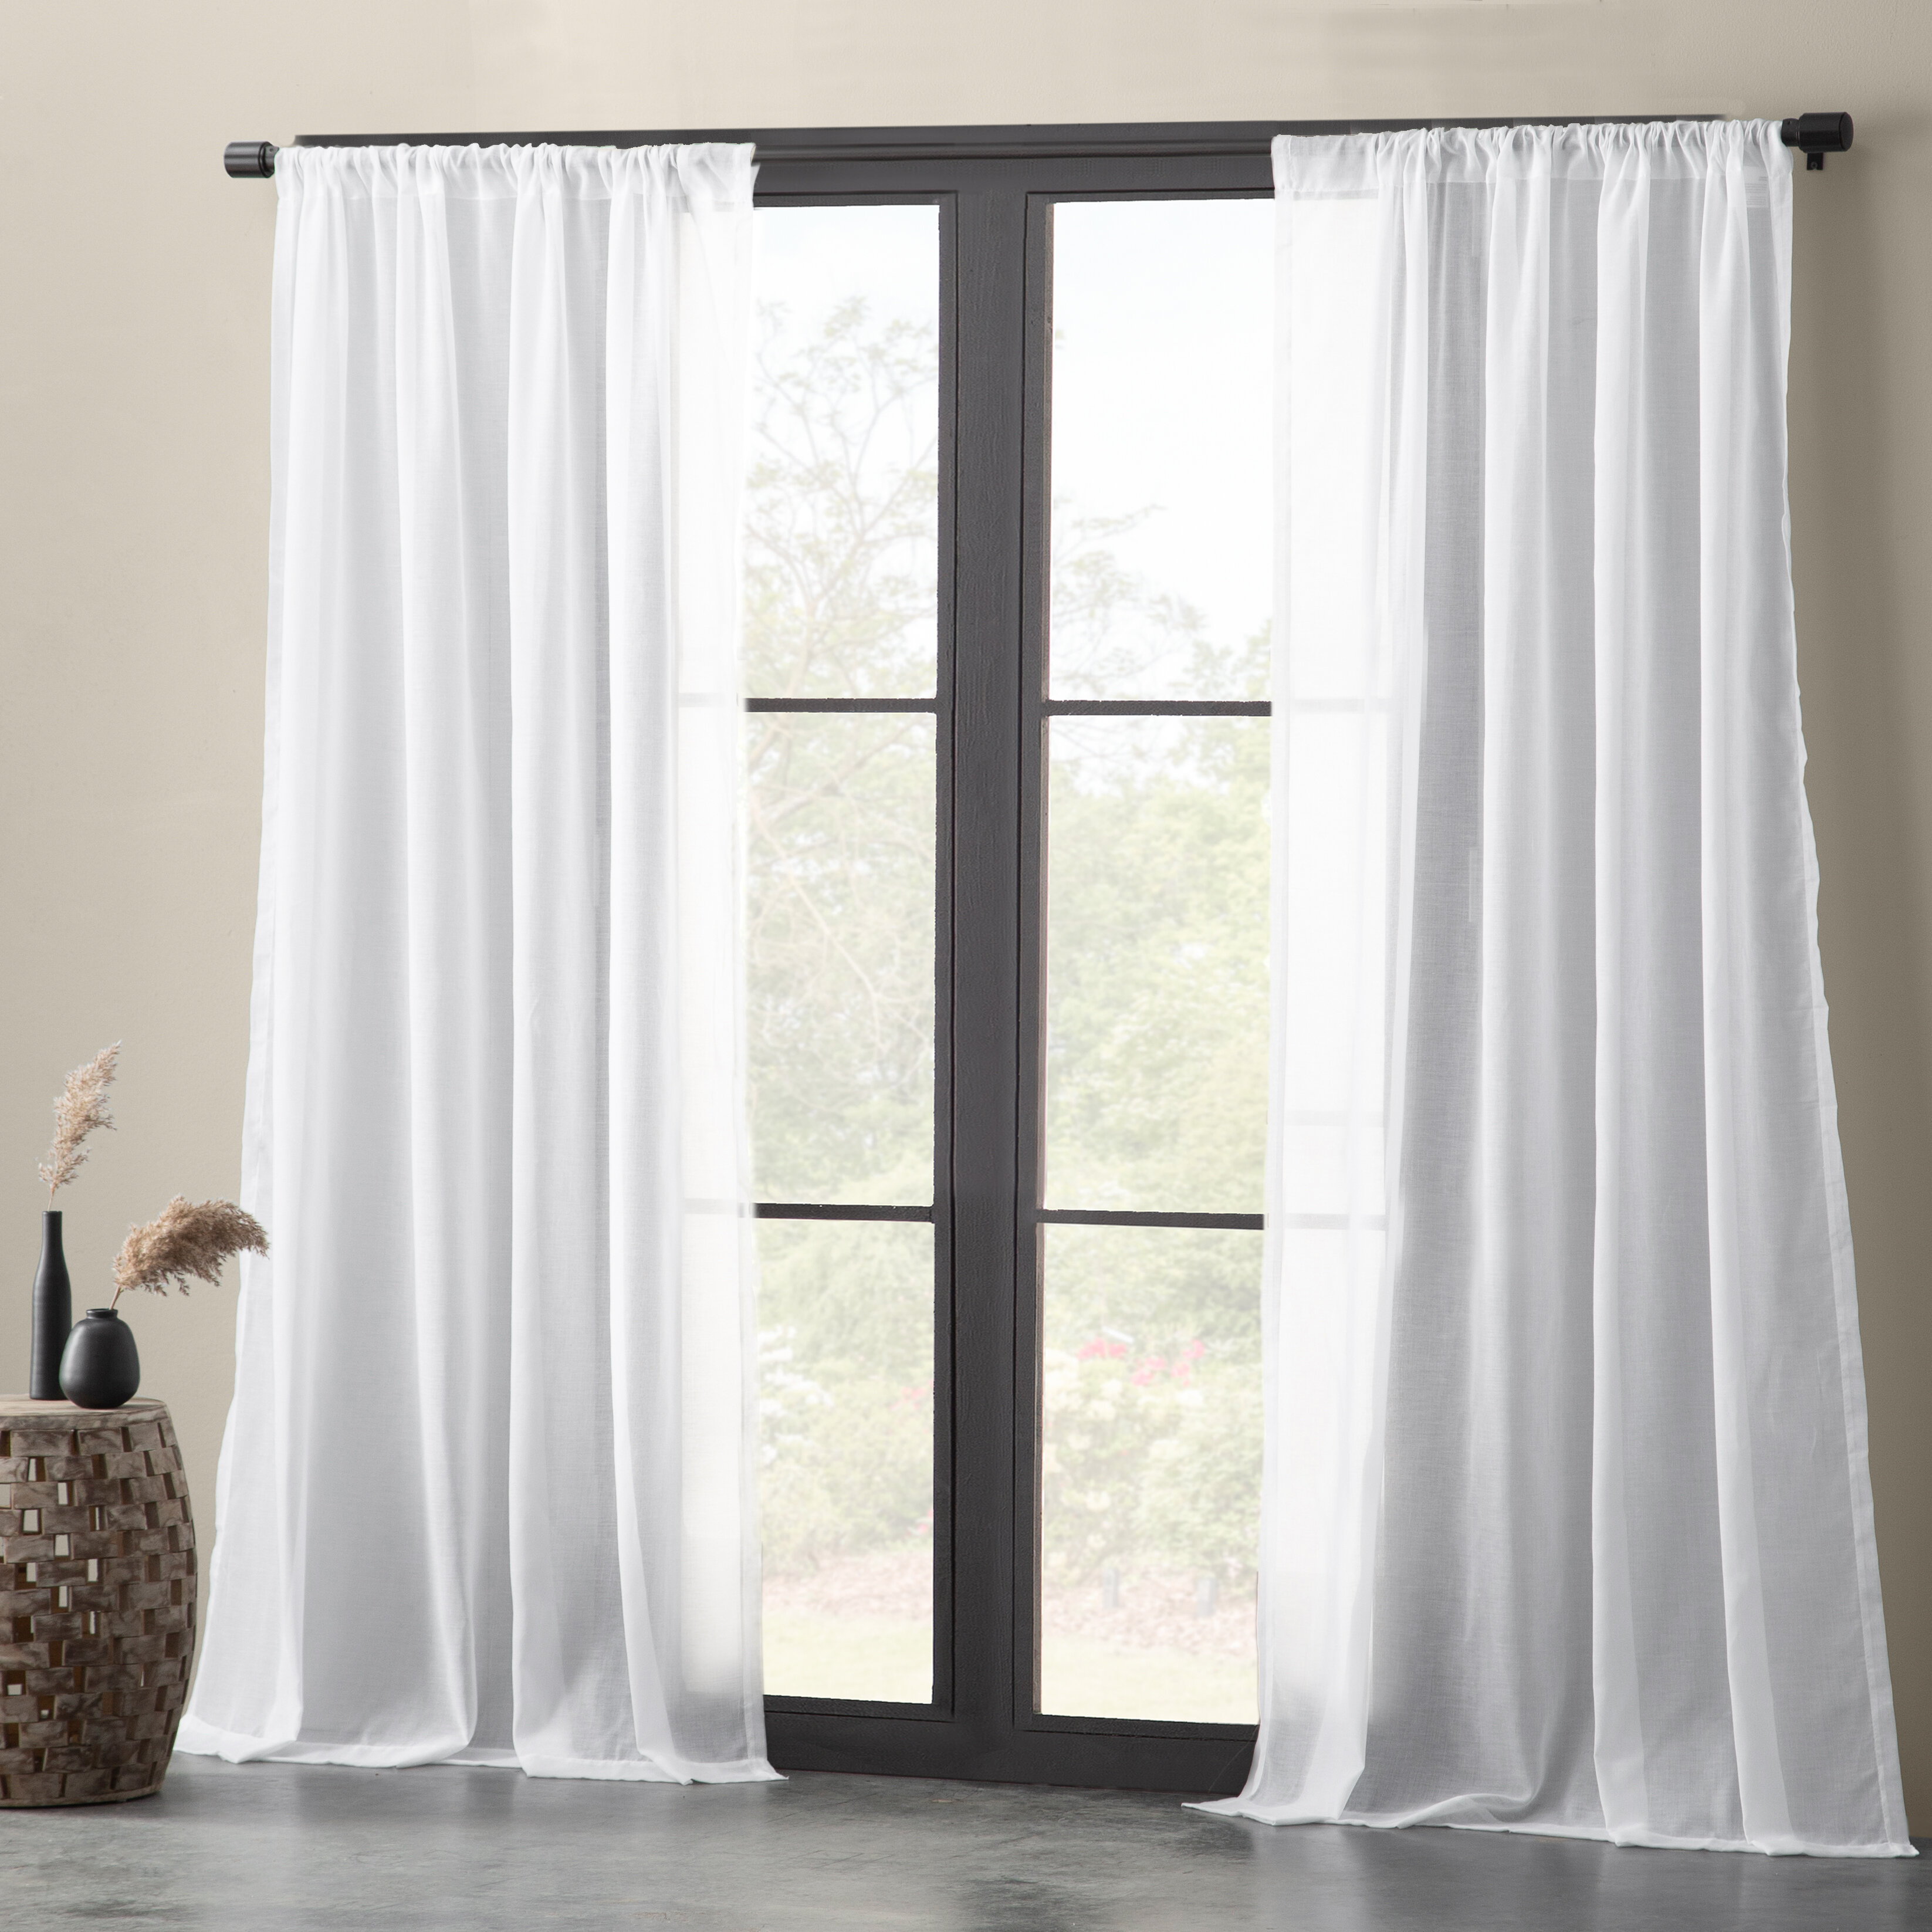 Nolan Cotton Blend Textured Weave Solid Sheer Rod Pocket Single Curtain Panel With Regard To Solid Country Cotton Linen Weave Curtain Panels (View 22 of 30)